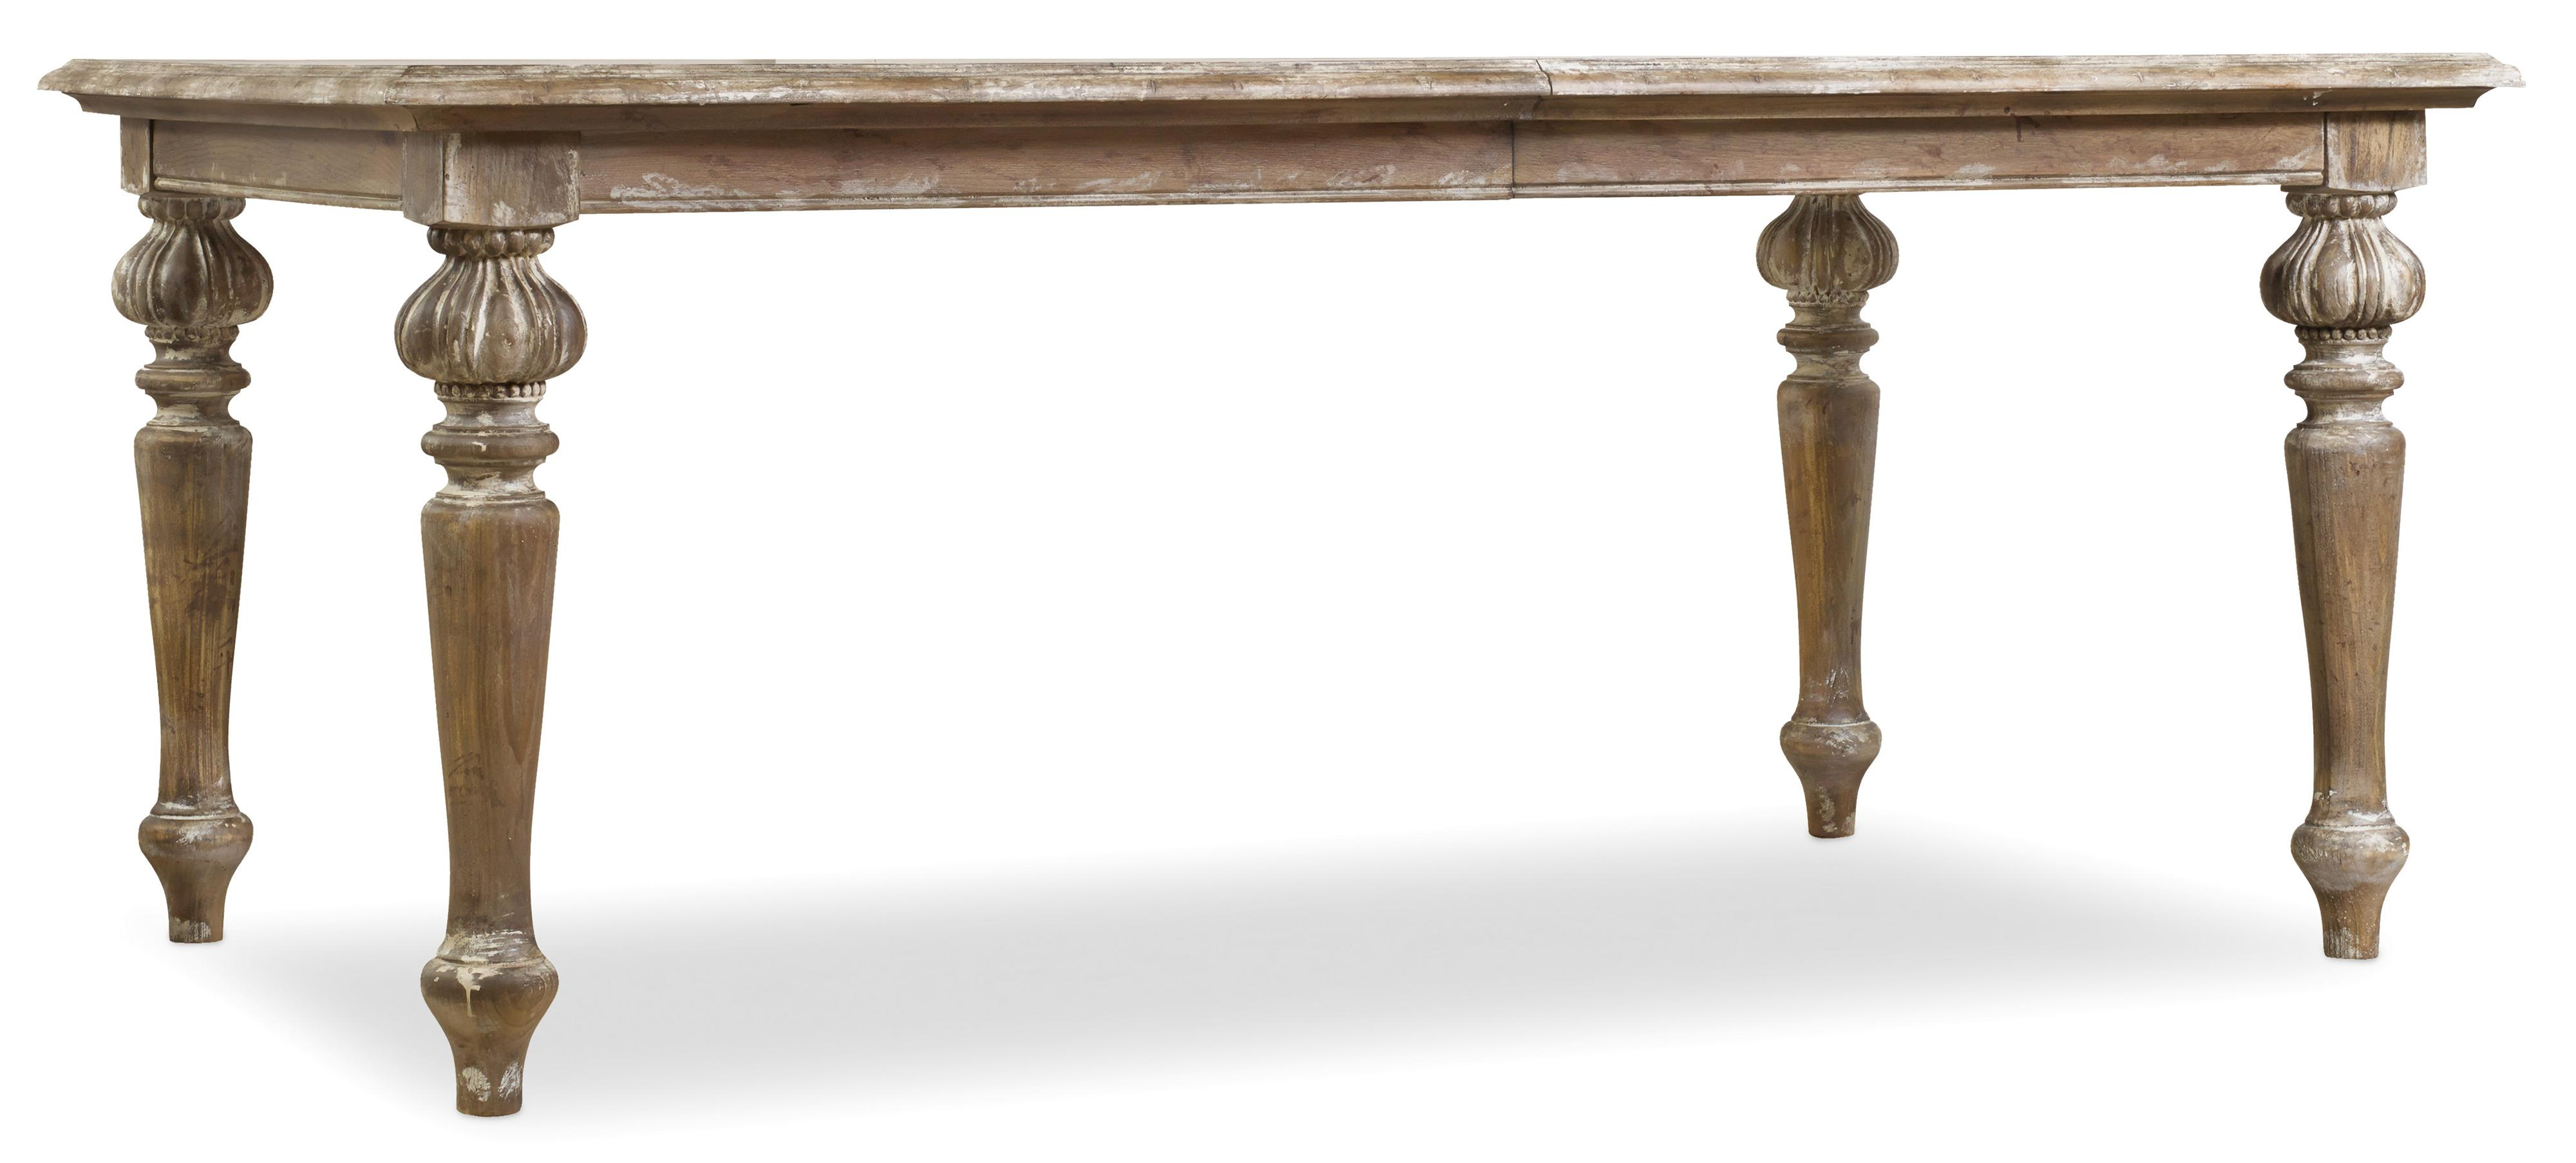 Chatelet Rectangle Leg Dining Table by Hooker Furniture at Alison Craig Home Furnishings